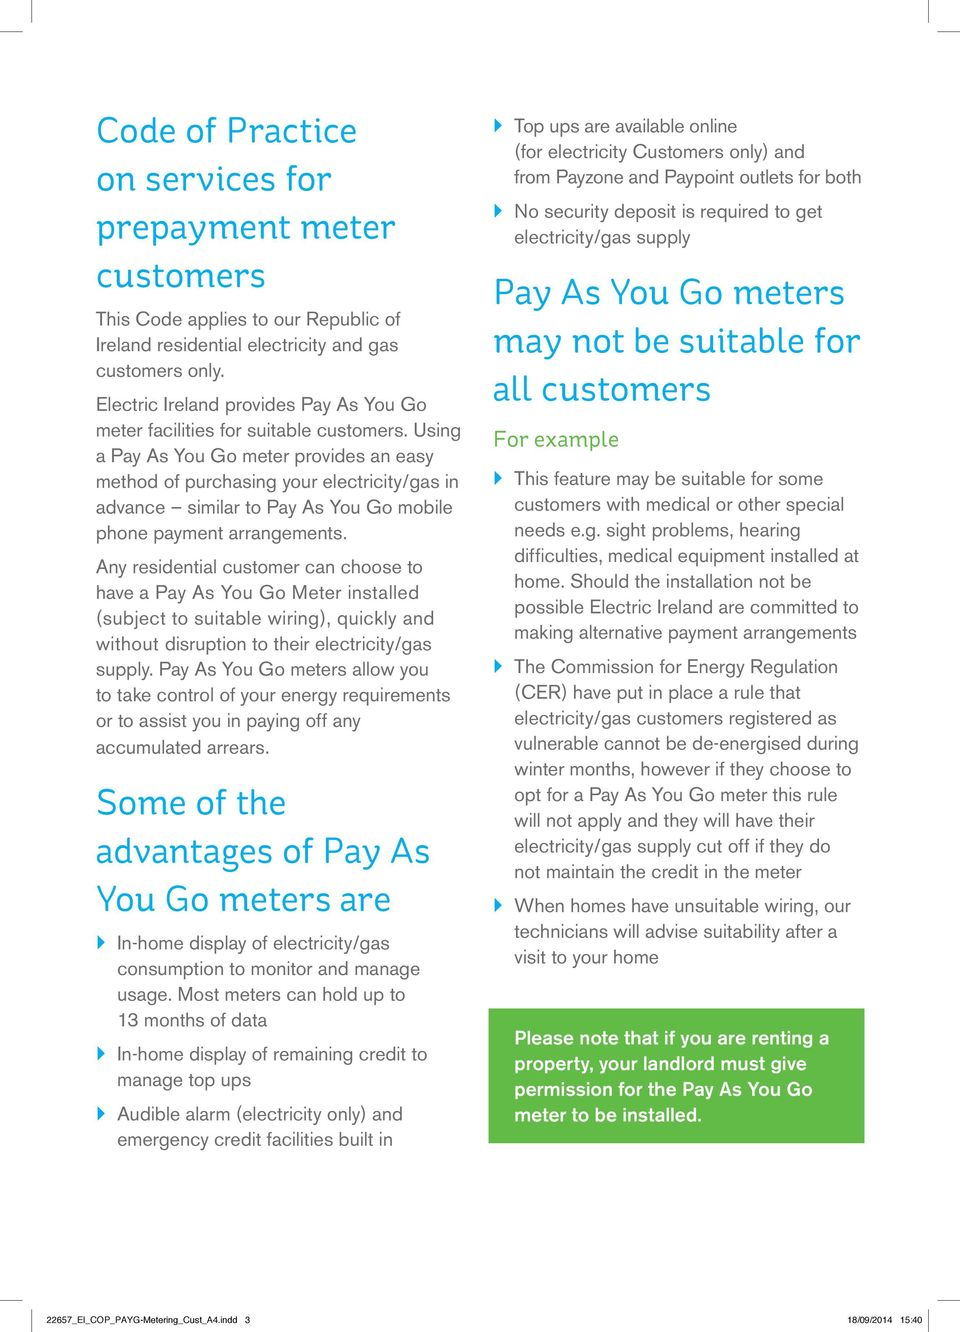 Using a Pay As You Go meter provides an easy method of purchasing your electricity/gas in advance similar to Pay As You Go mobile phone payment arrangements.